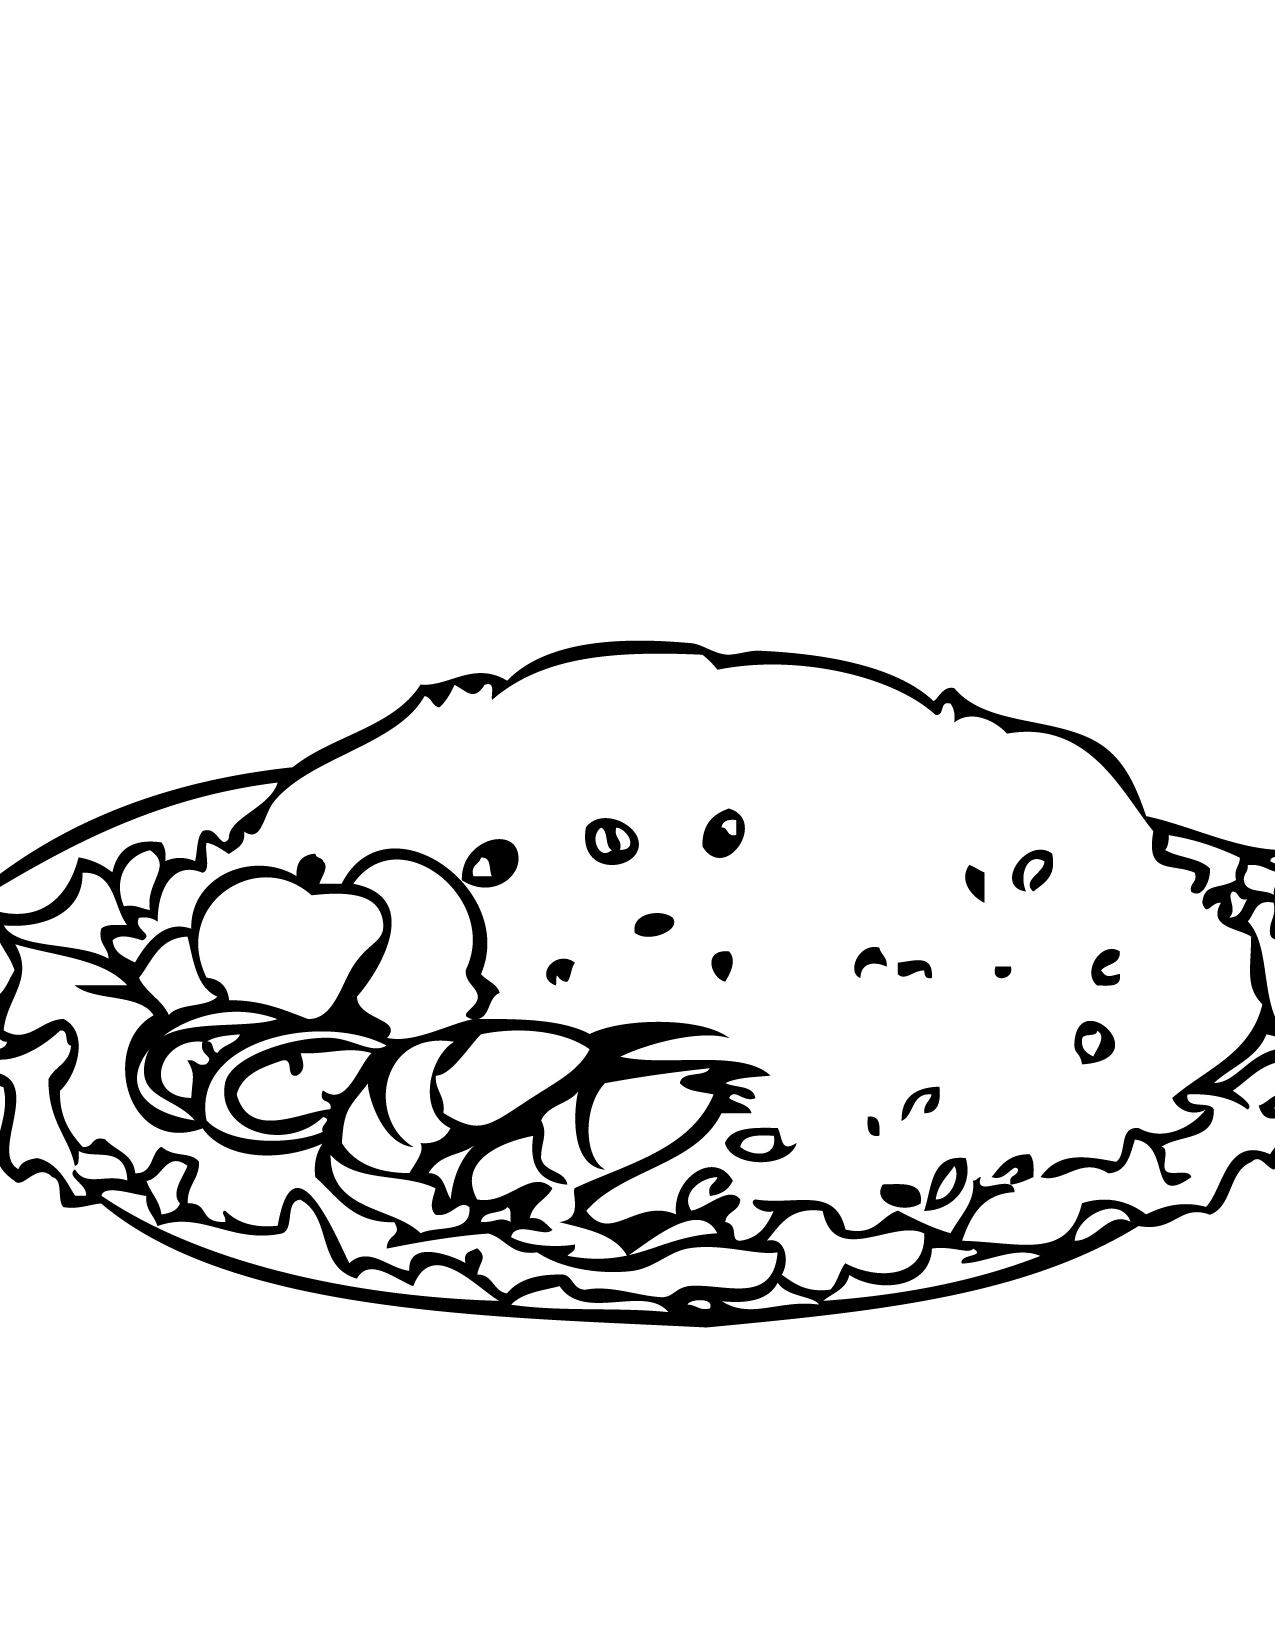 Rice clipart coloring page, Picture #3128626 rice clipart coloring page